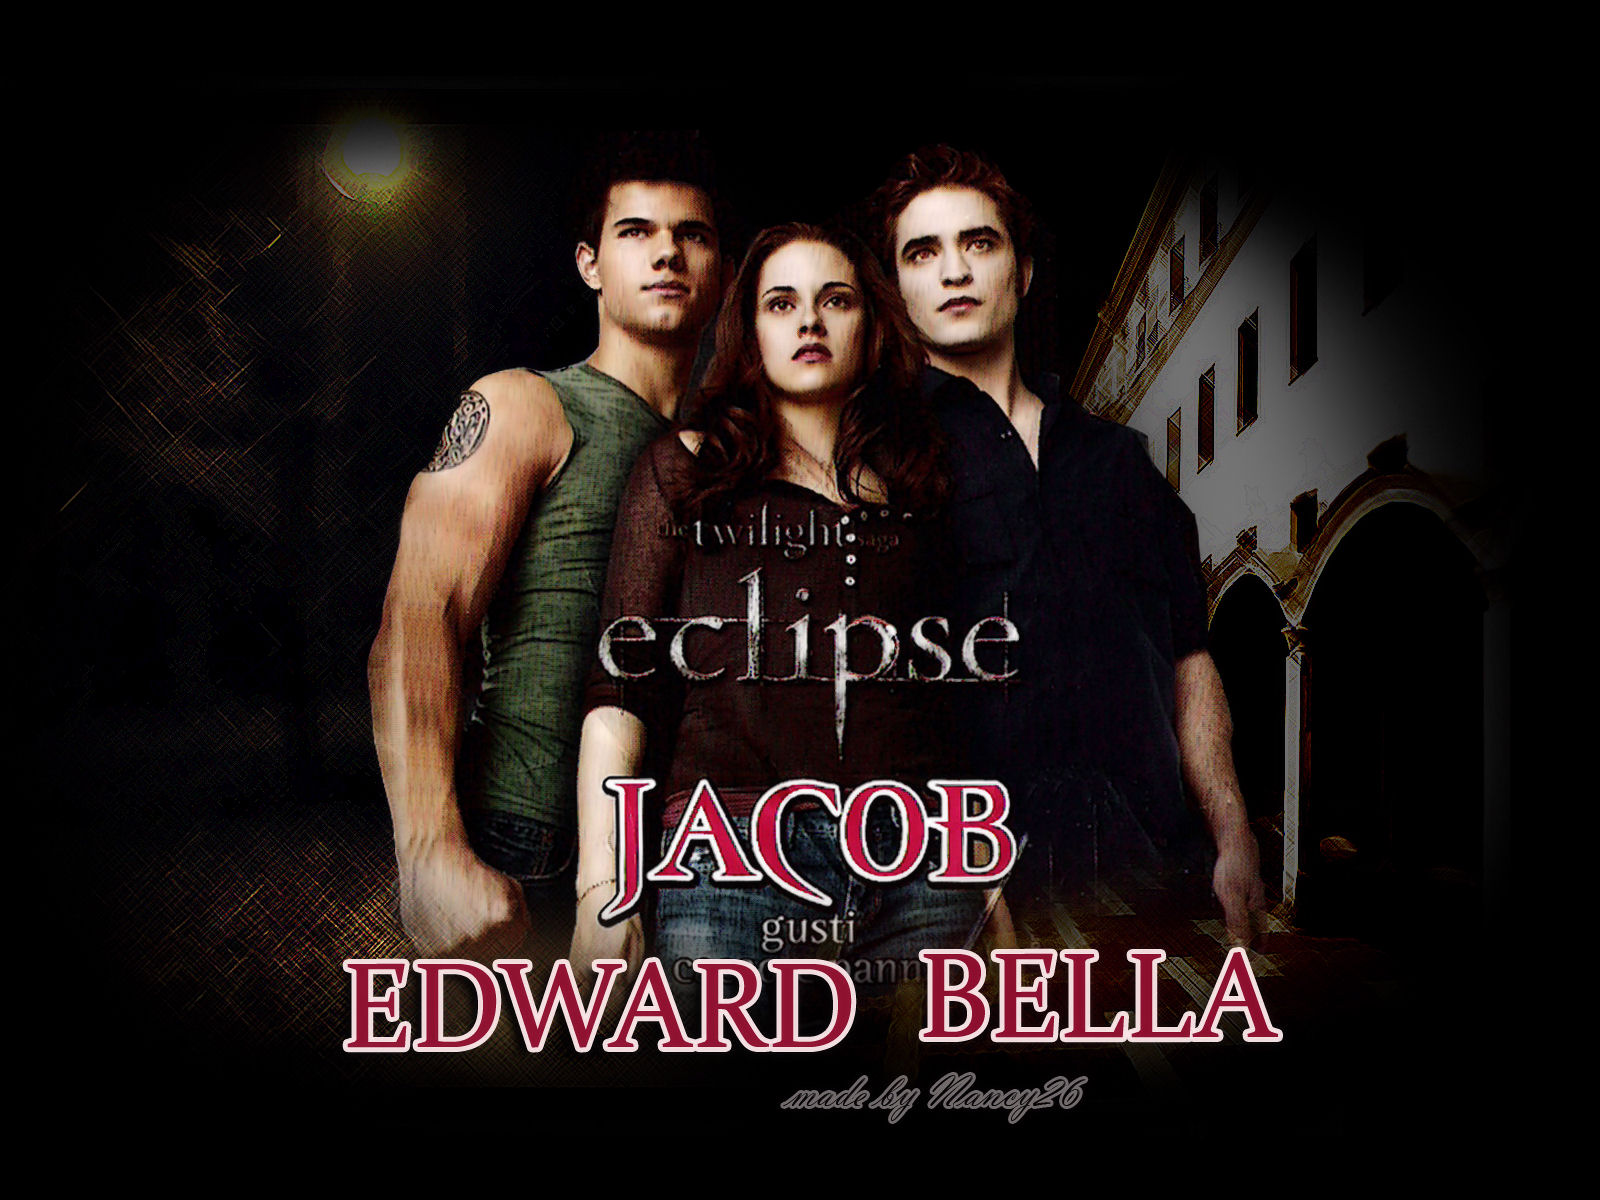 the twilight saga: eclipse hd wallpapers backgrounds 1600x1200